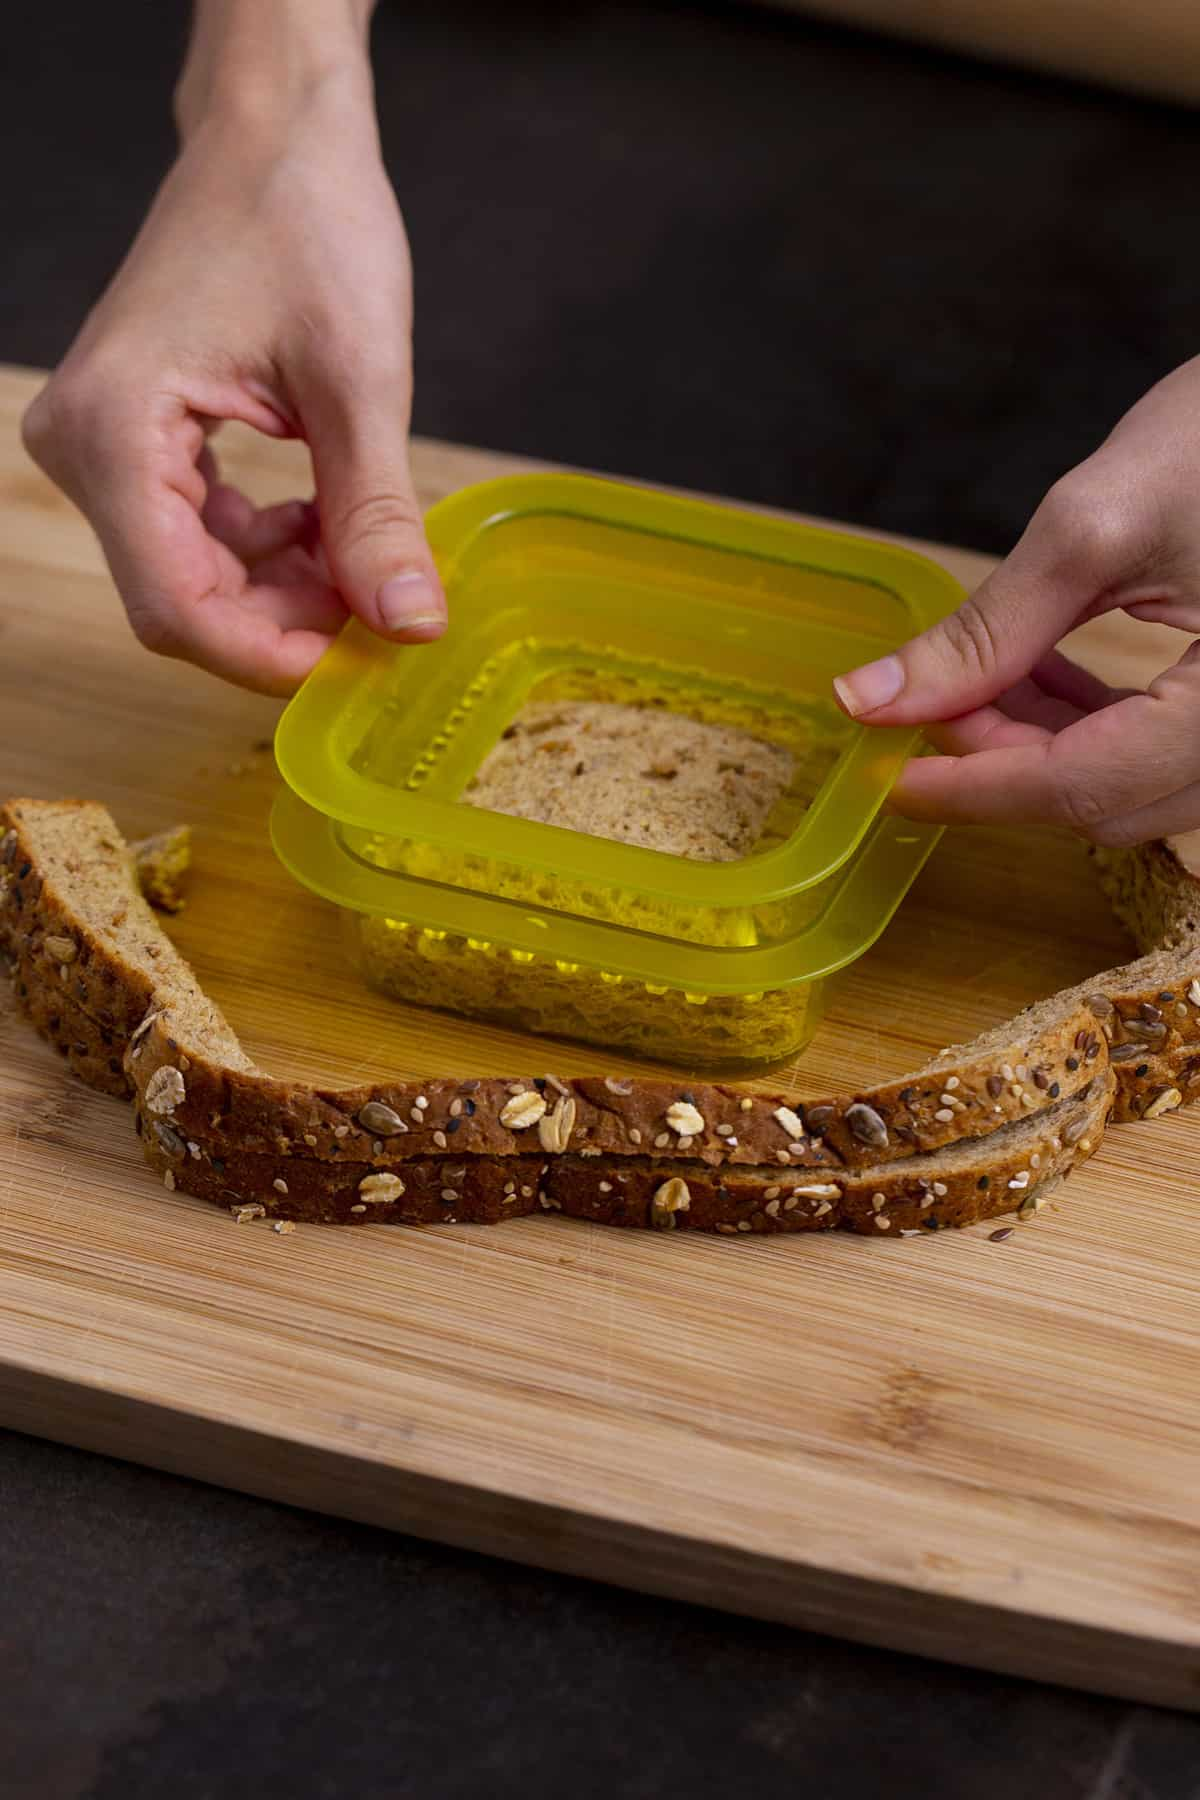 Use sealer to press edges of uncrustables sandwich until crimped and closed.